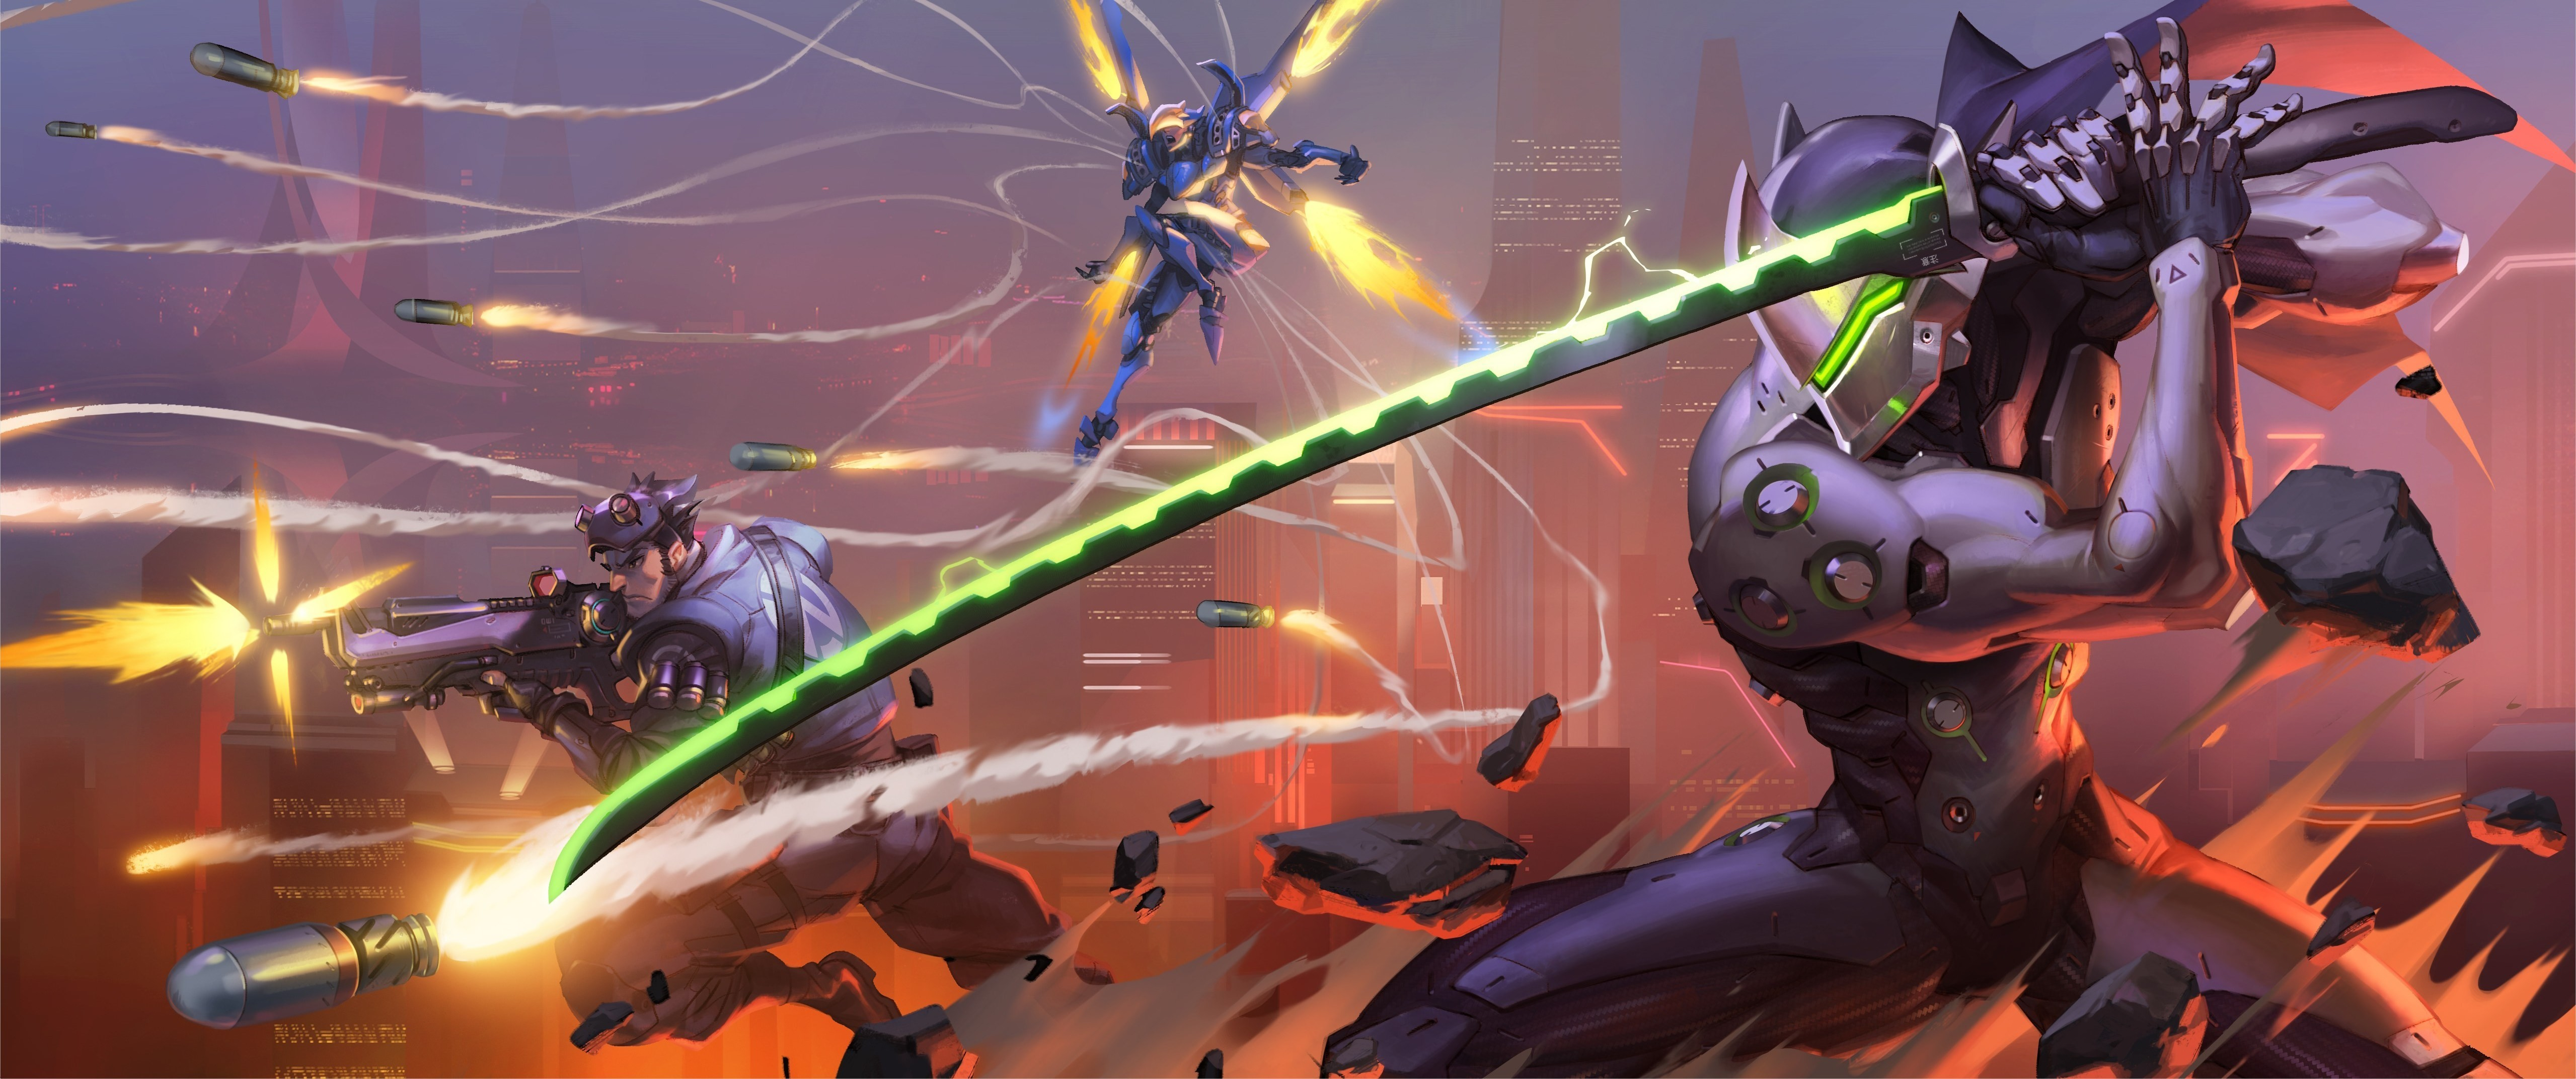 Overwatch full hd wallpaper and background 1920x1280 - Hd Wallpaper Background Id 681674